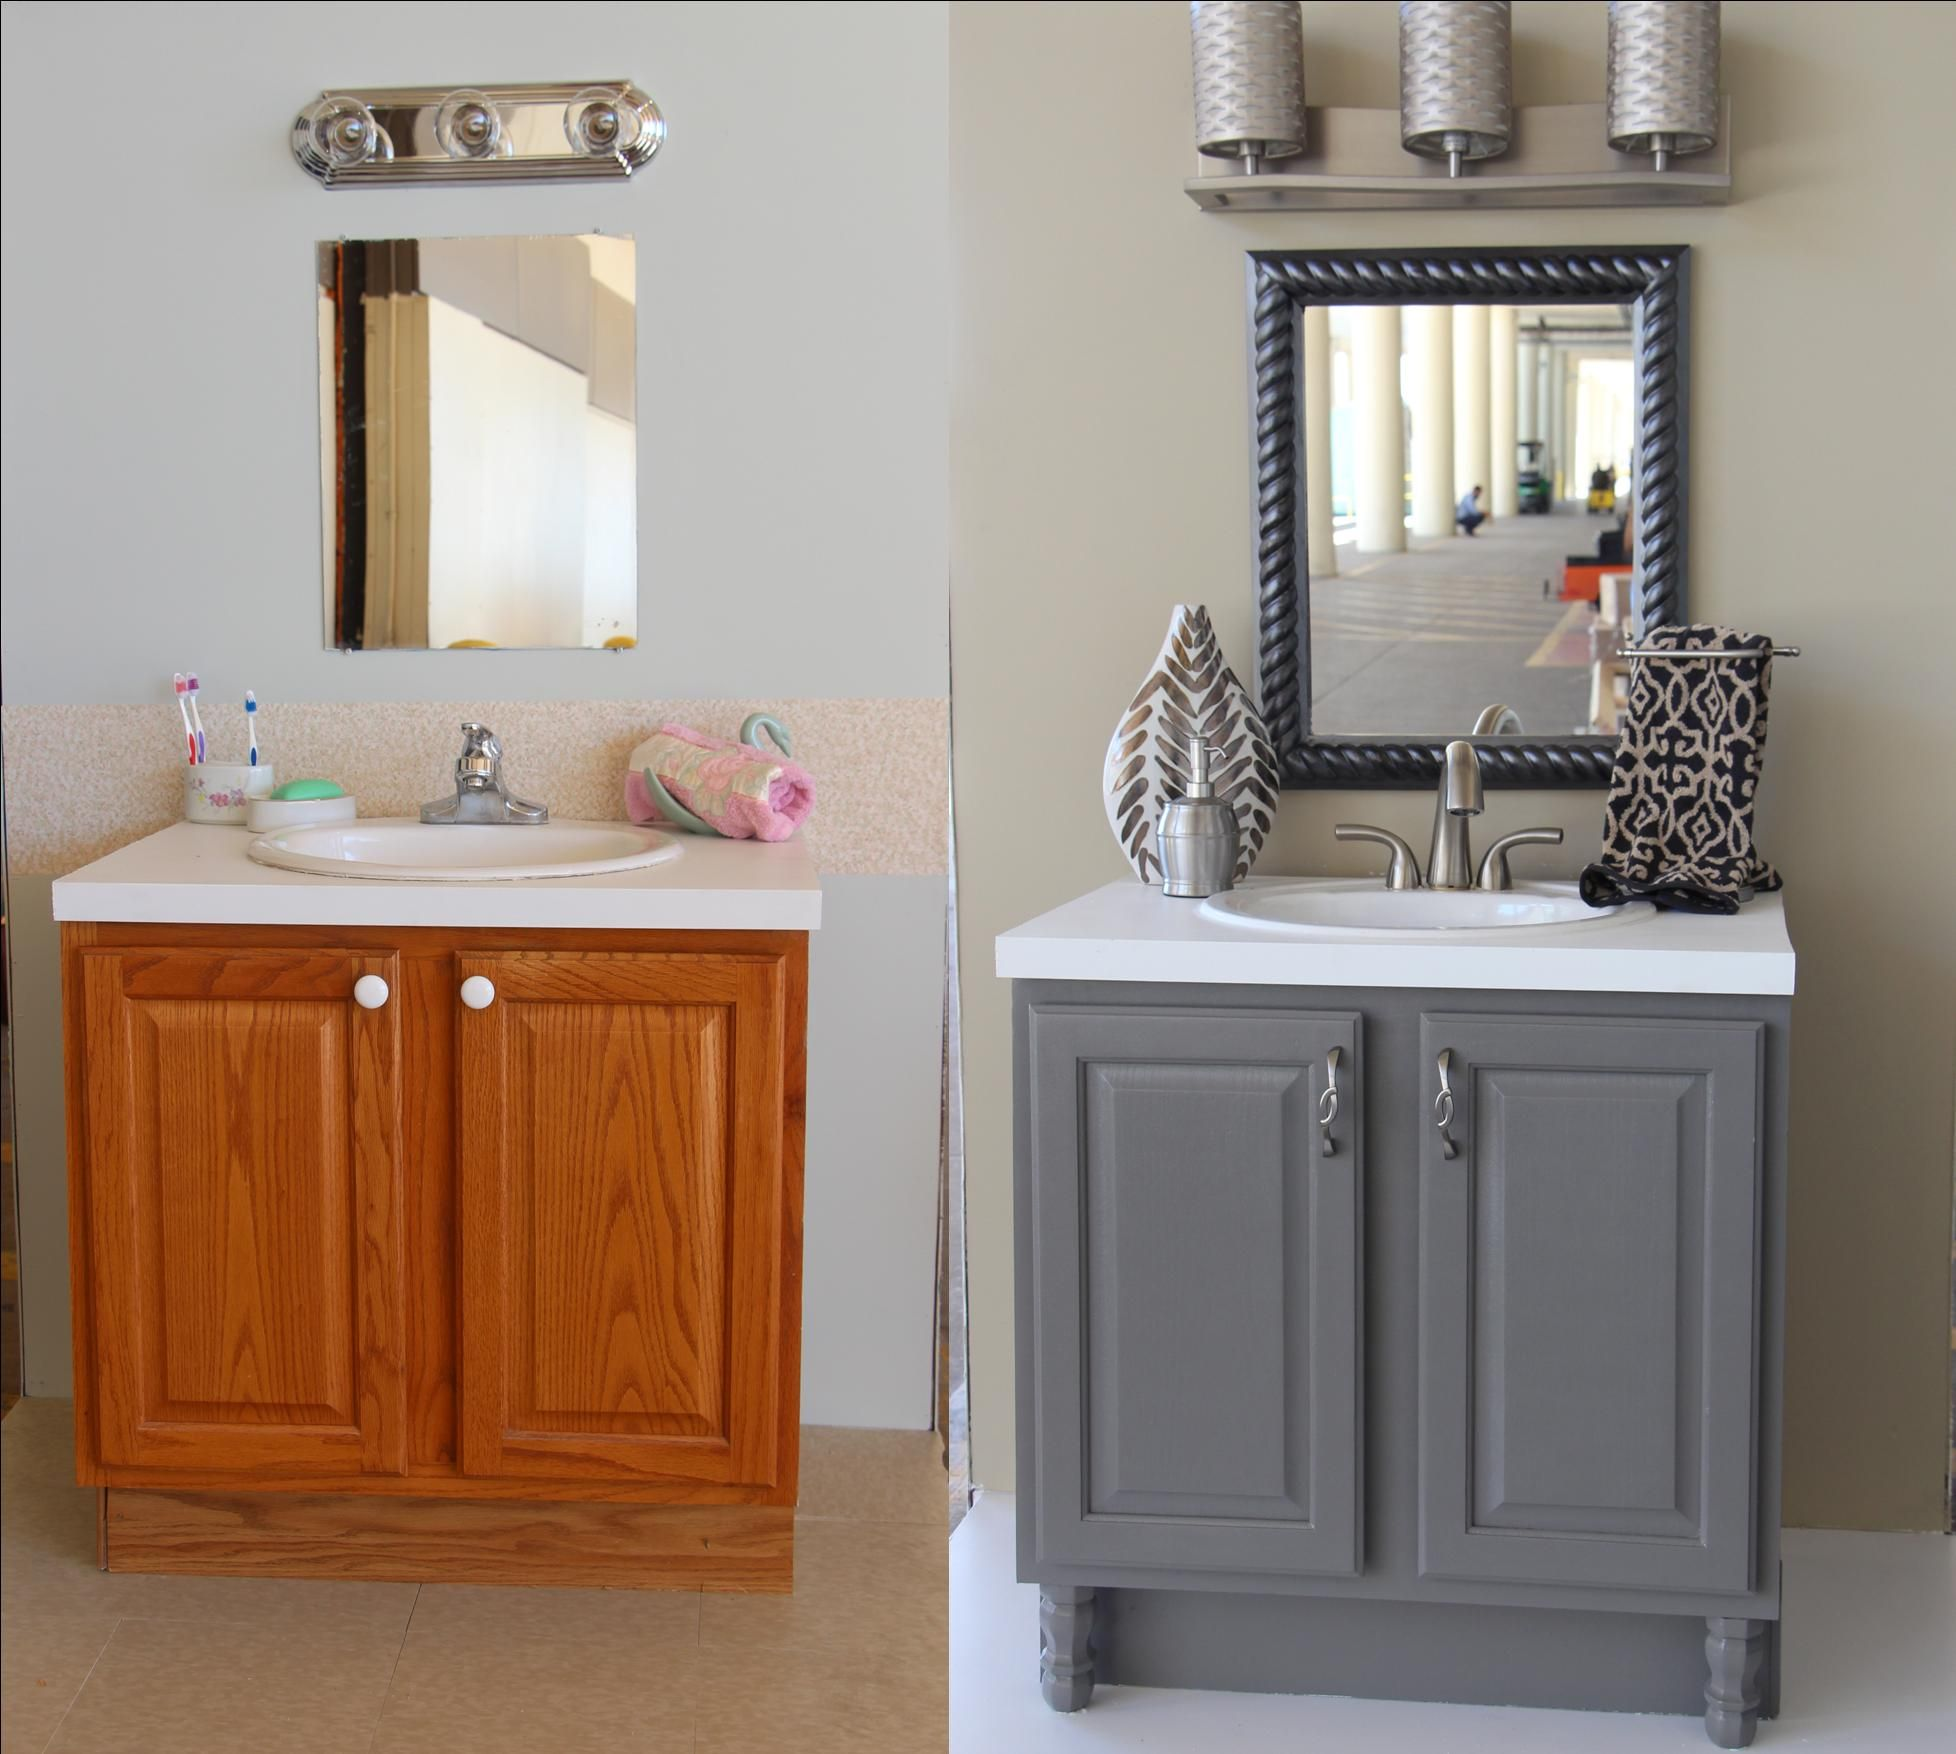 Ordinaire Trendsetter Bath Before And After With Accessories Upcycled Bathroom Ideas